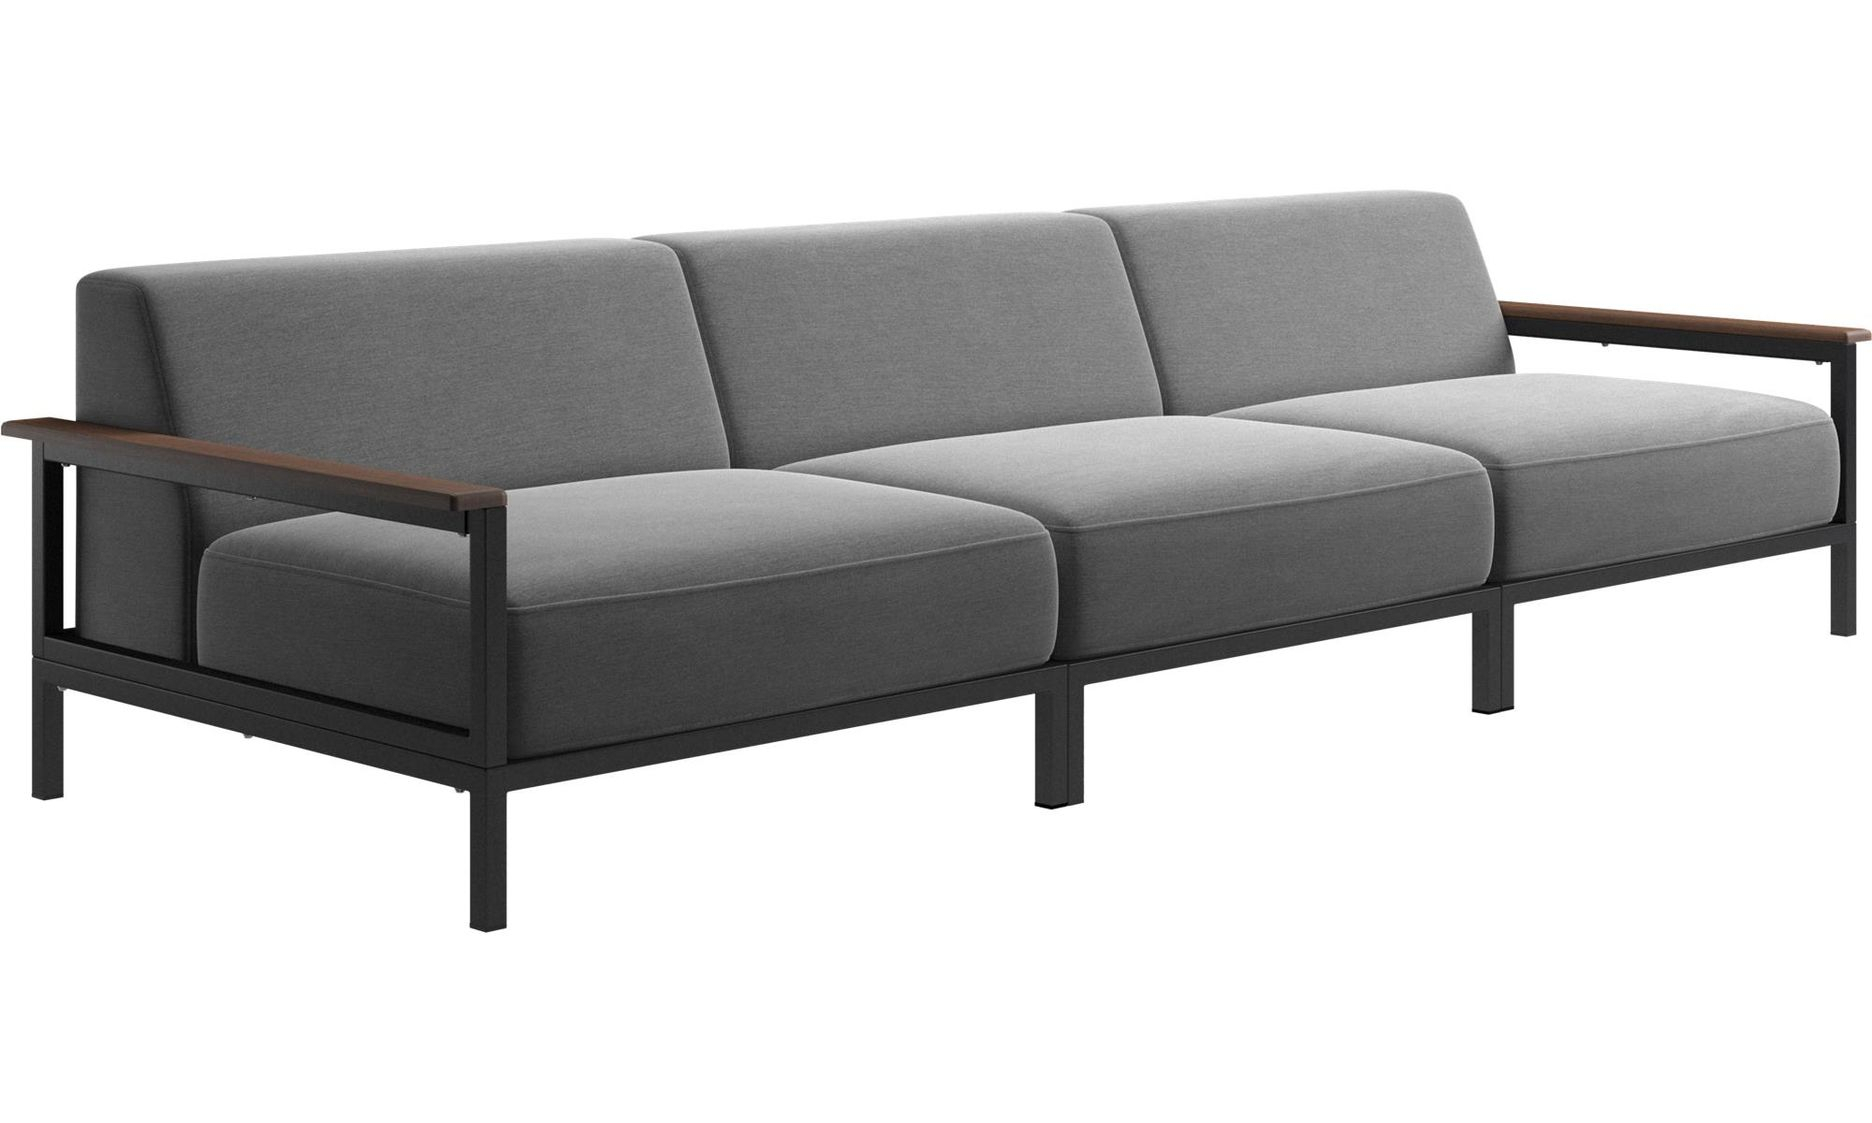 Rome Outdoor Sofa, Light Grey Outdoor Fabric – Goodglance Regarding Outdoor Sofas And Chairs (View 1 of 15)